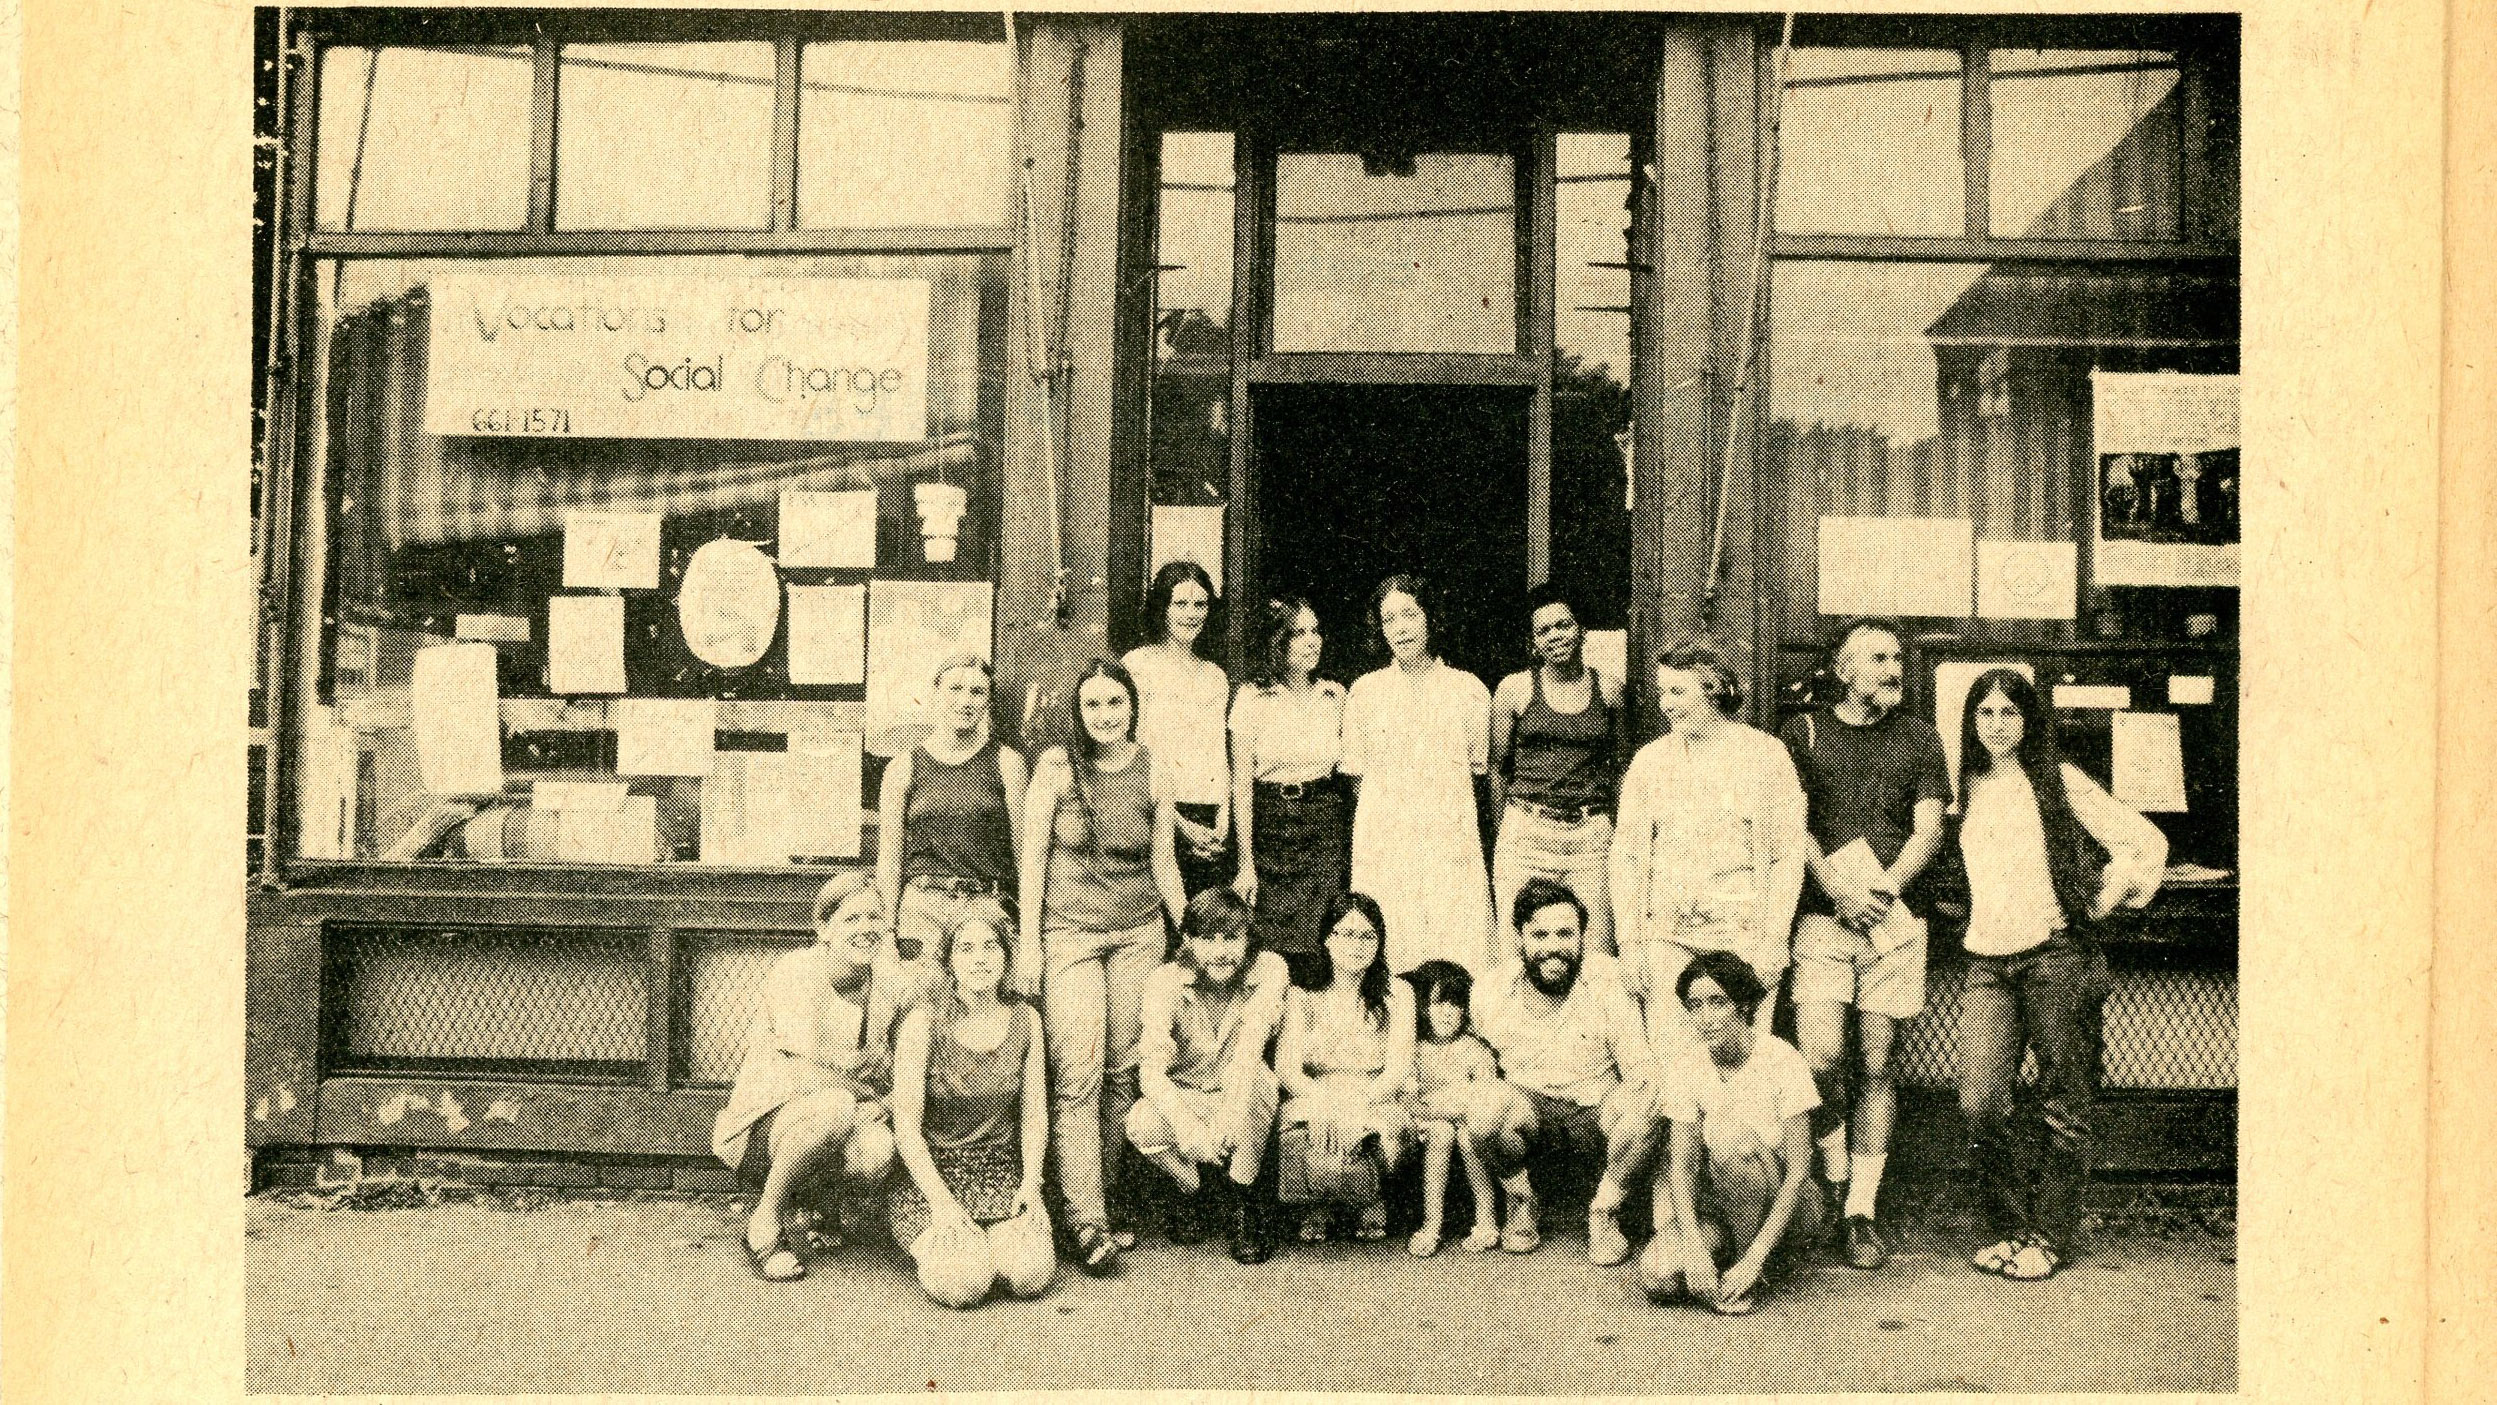 A photo from the 1976 edition of the People's Yellow Pages shows the publication's volunteers assembled before the Vocations for Social Change office in Cambridge. (Courtesy Shelley Rotner)